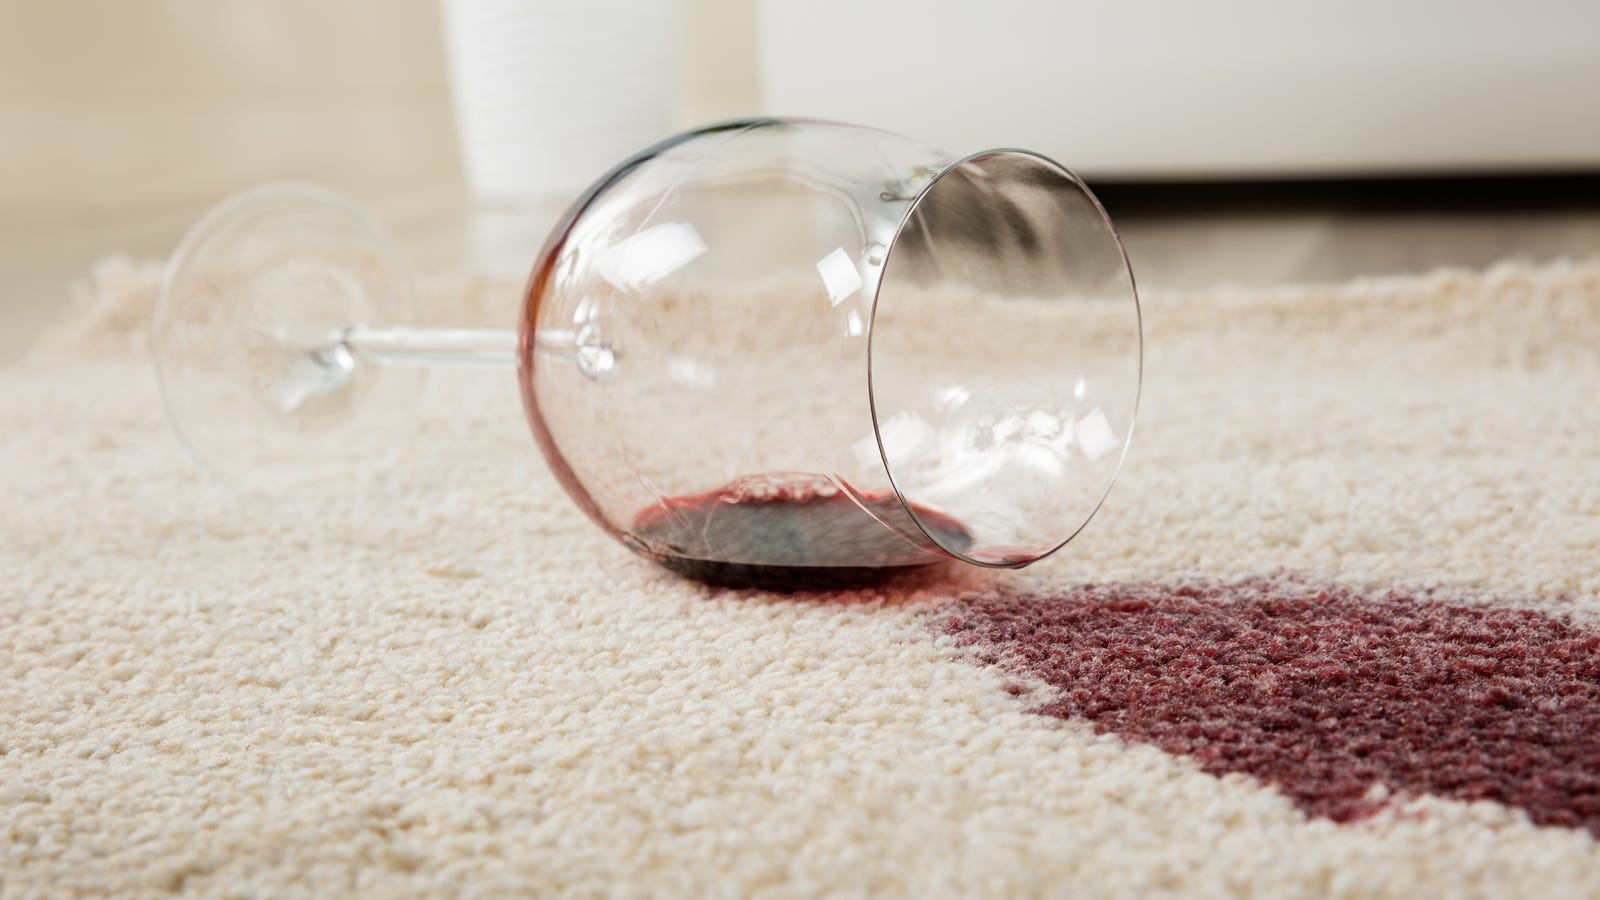 Remove Stains From Your Carpet With Baking Soda and Vinegar